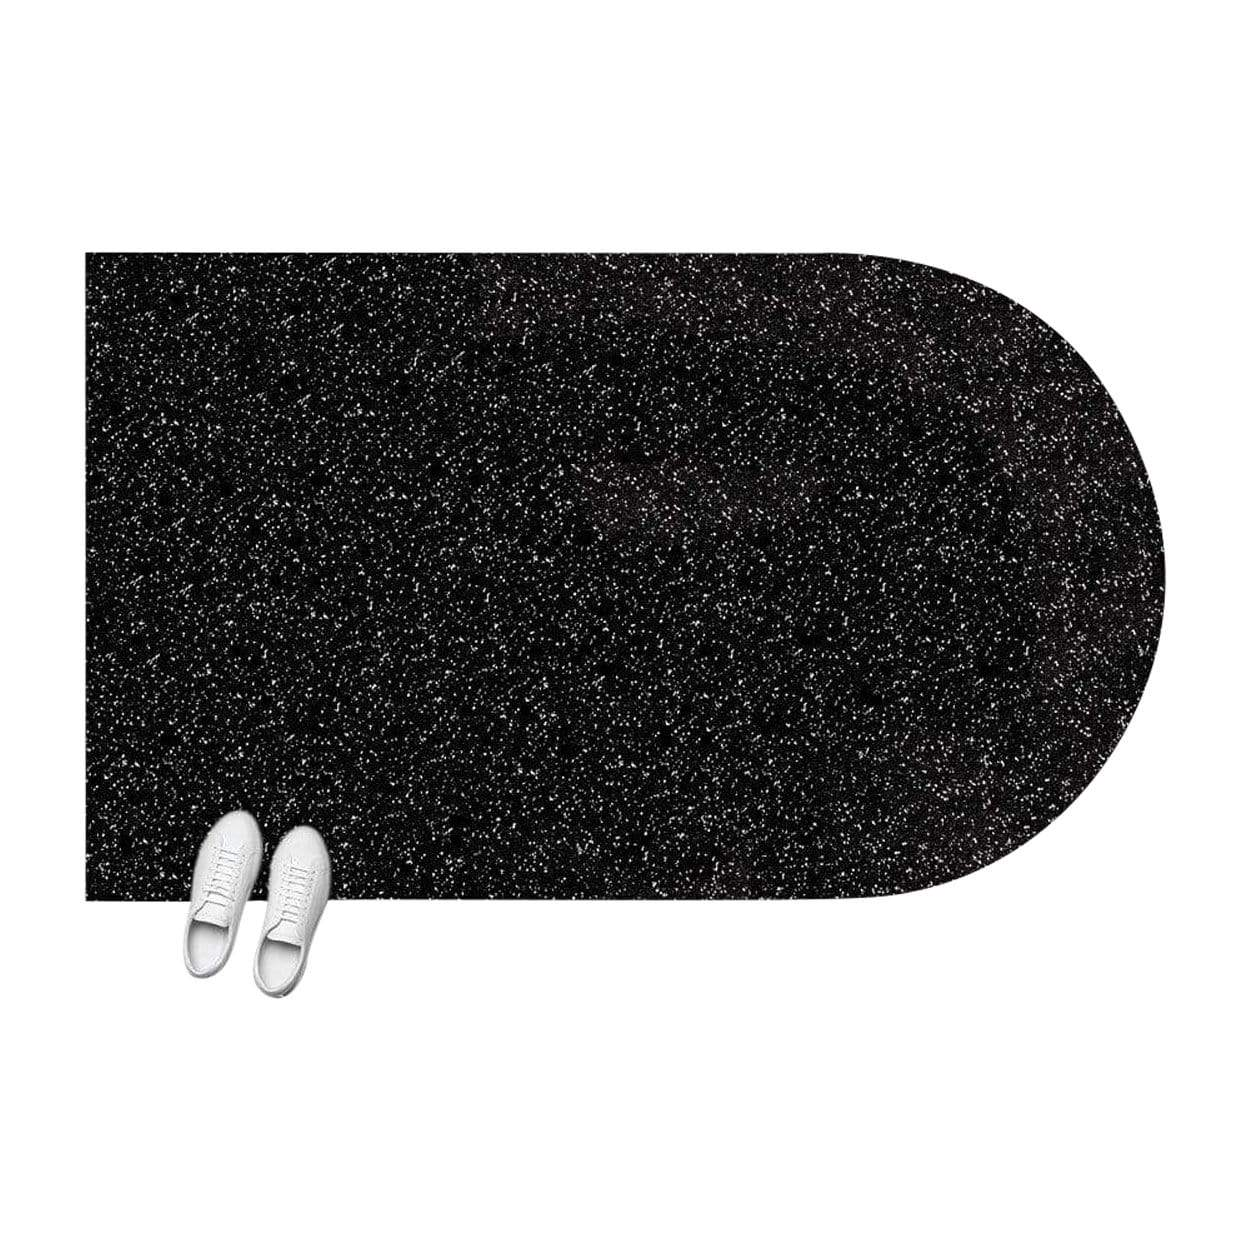 Slash Objects Rugs + Flooring Speckled Black Half Capsule Floor Mat